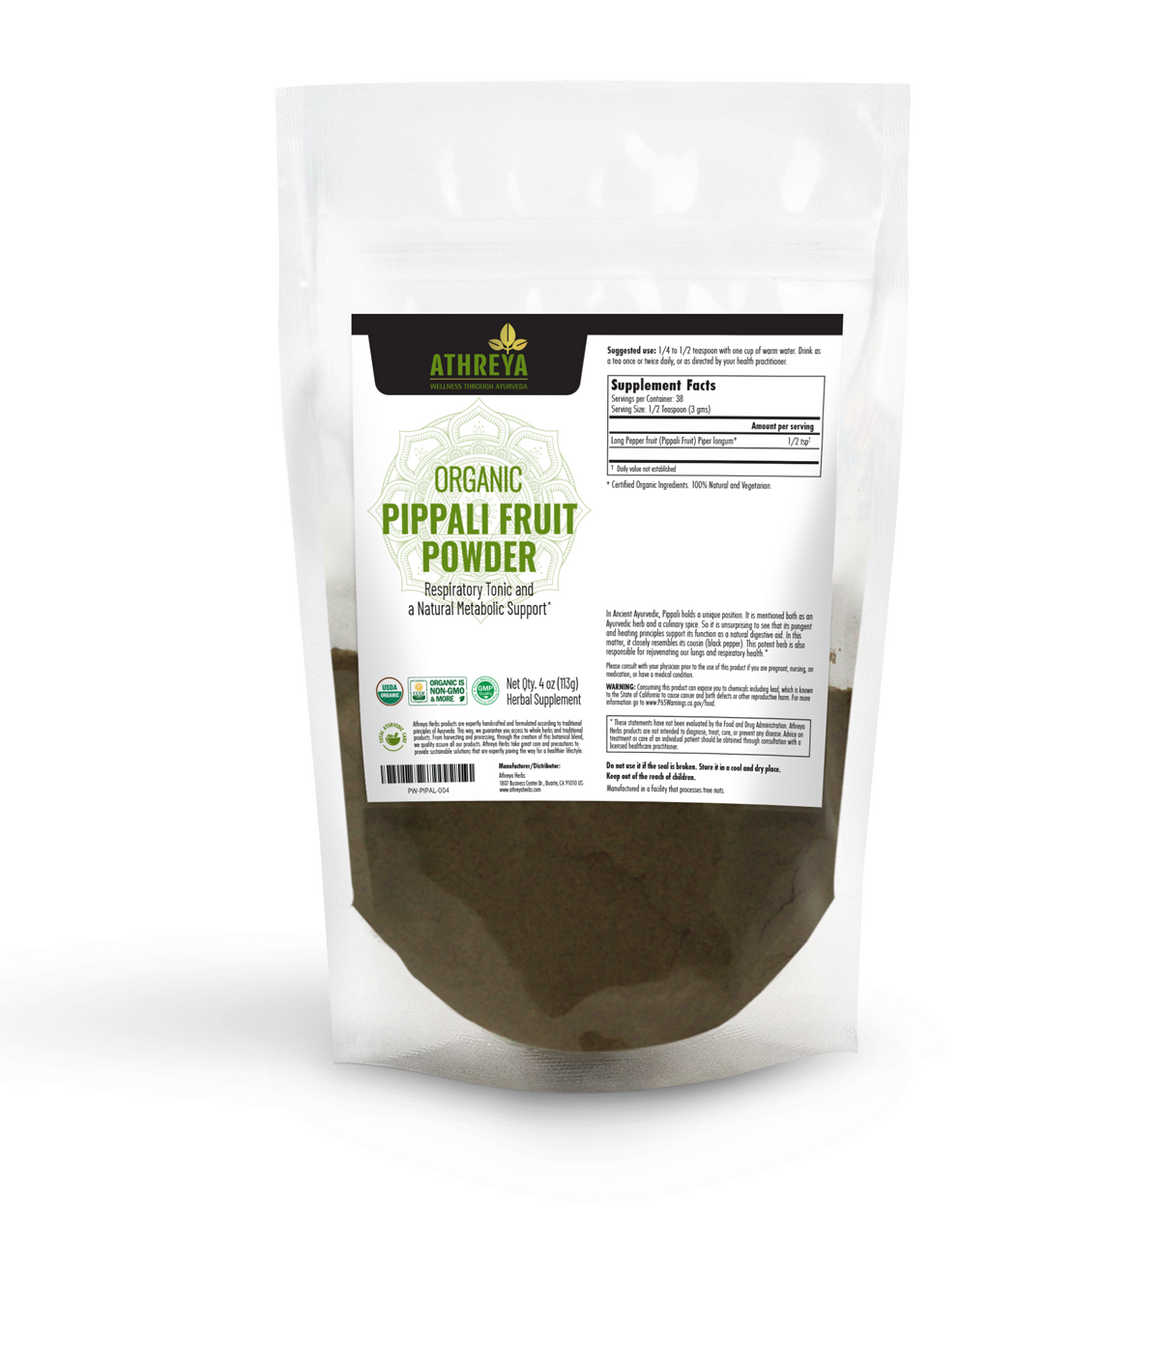 Organic Pippali Fruit Powder